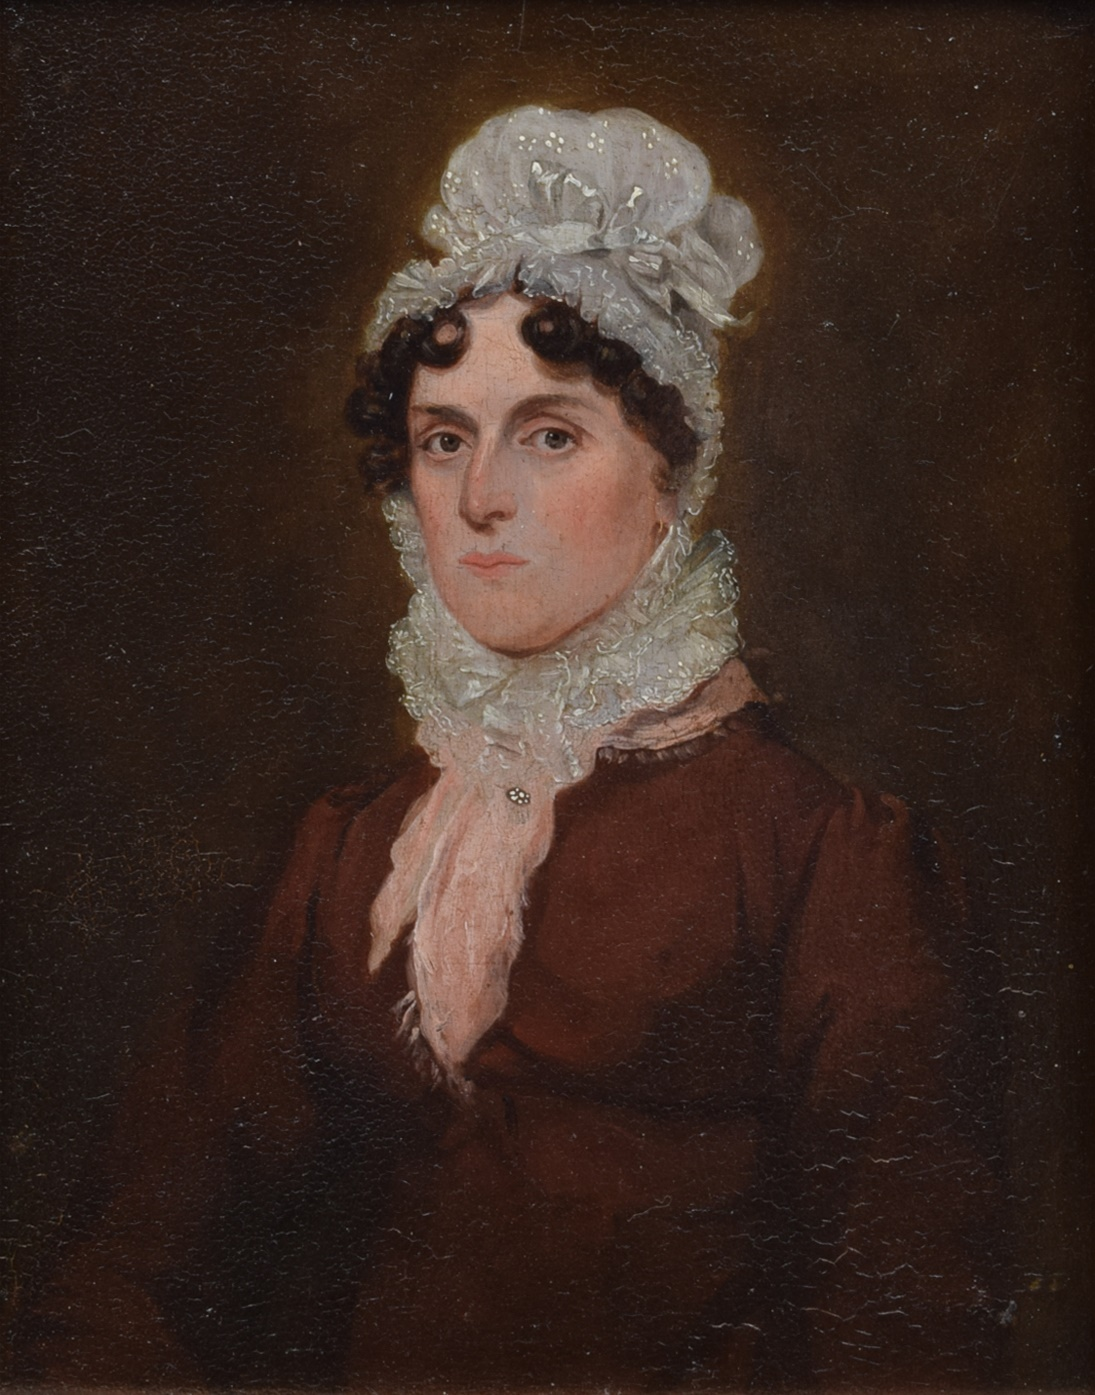 Lot 18 - English School, 19th century, Portrait of a lady wearing a lace cap, unsigned, oil on board, 17.5